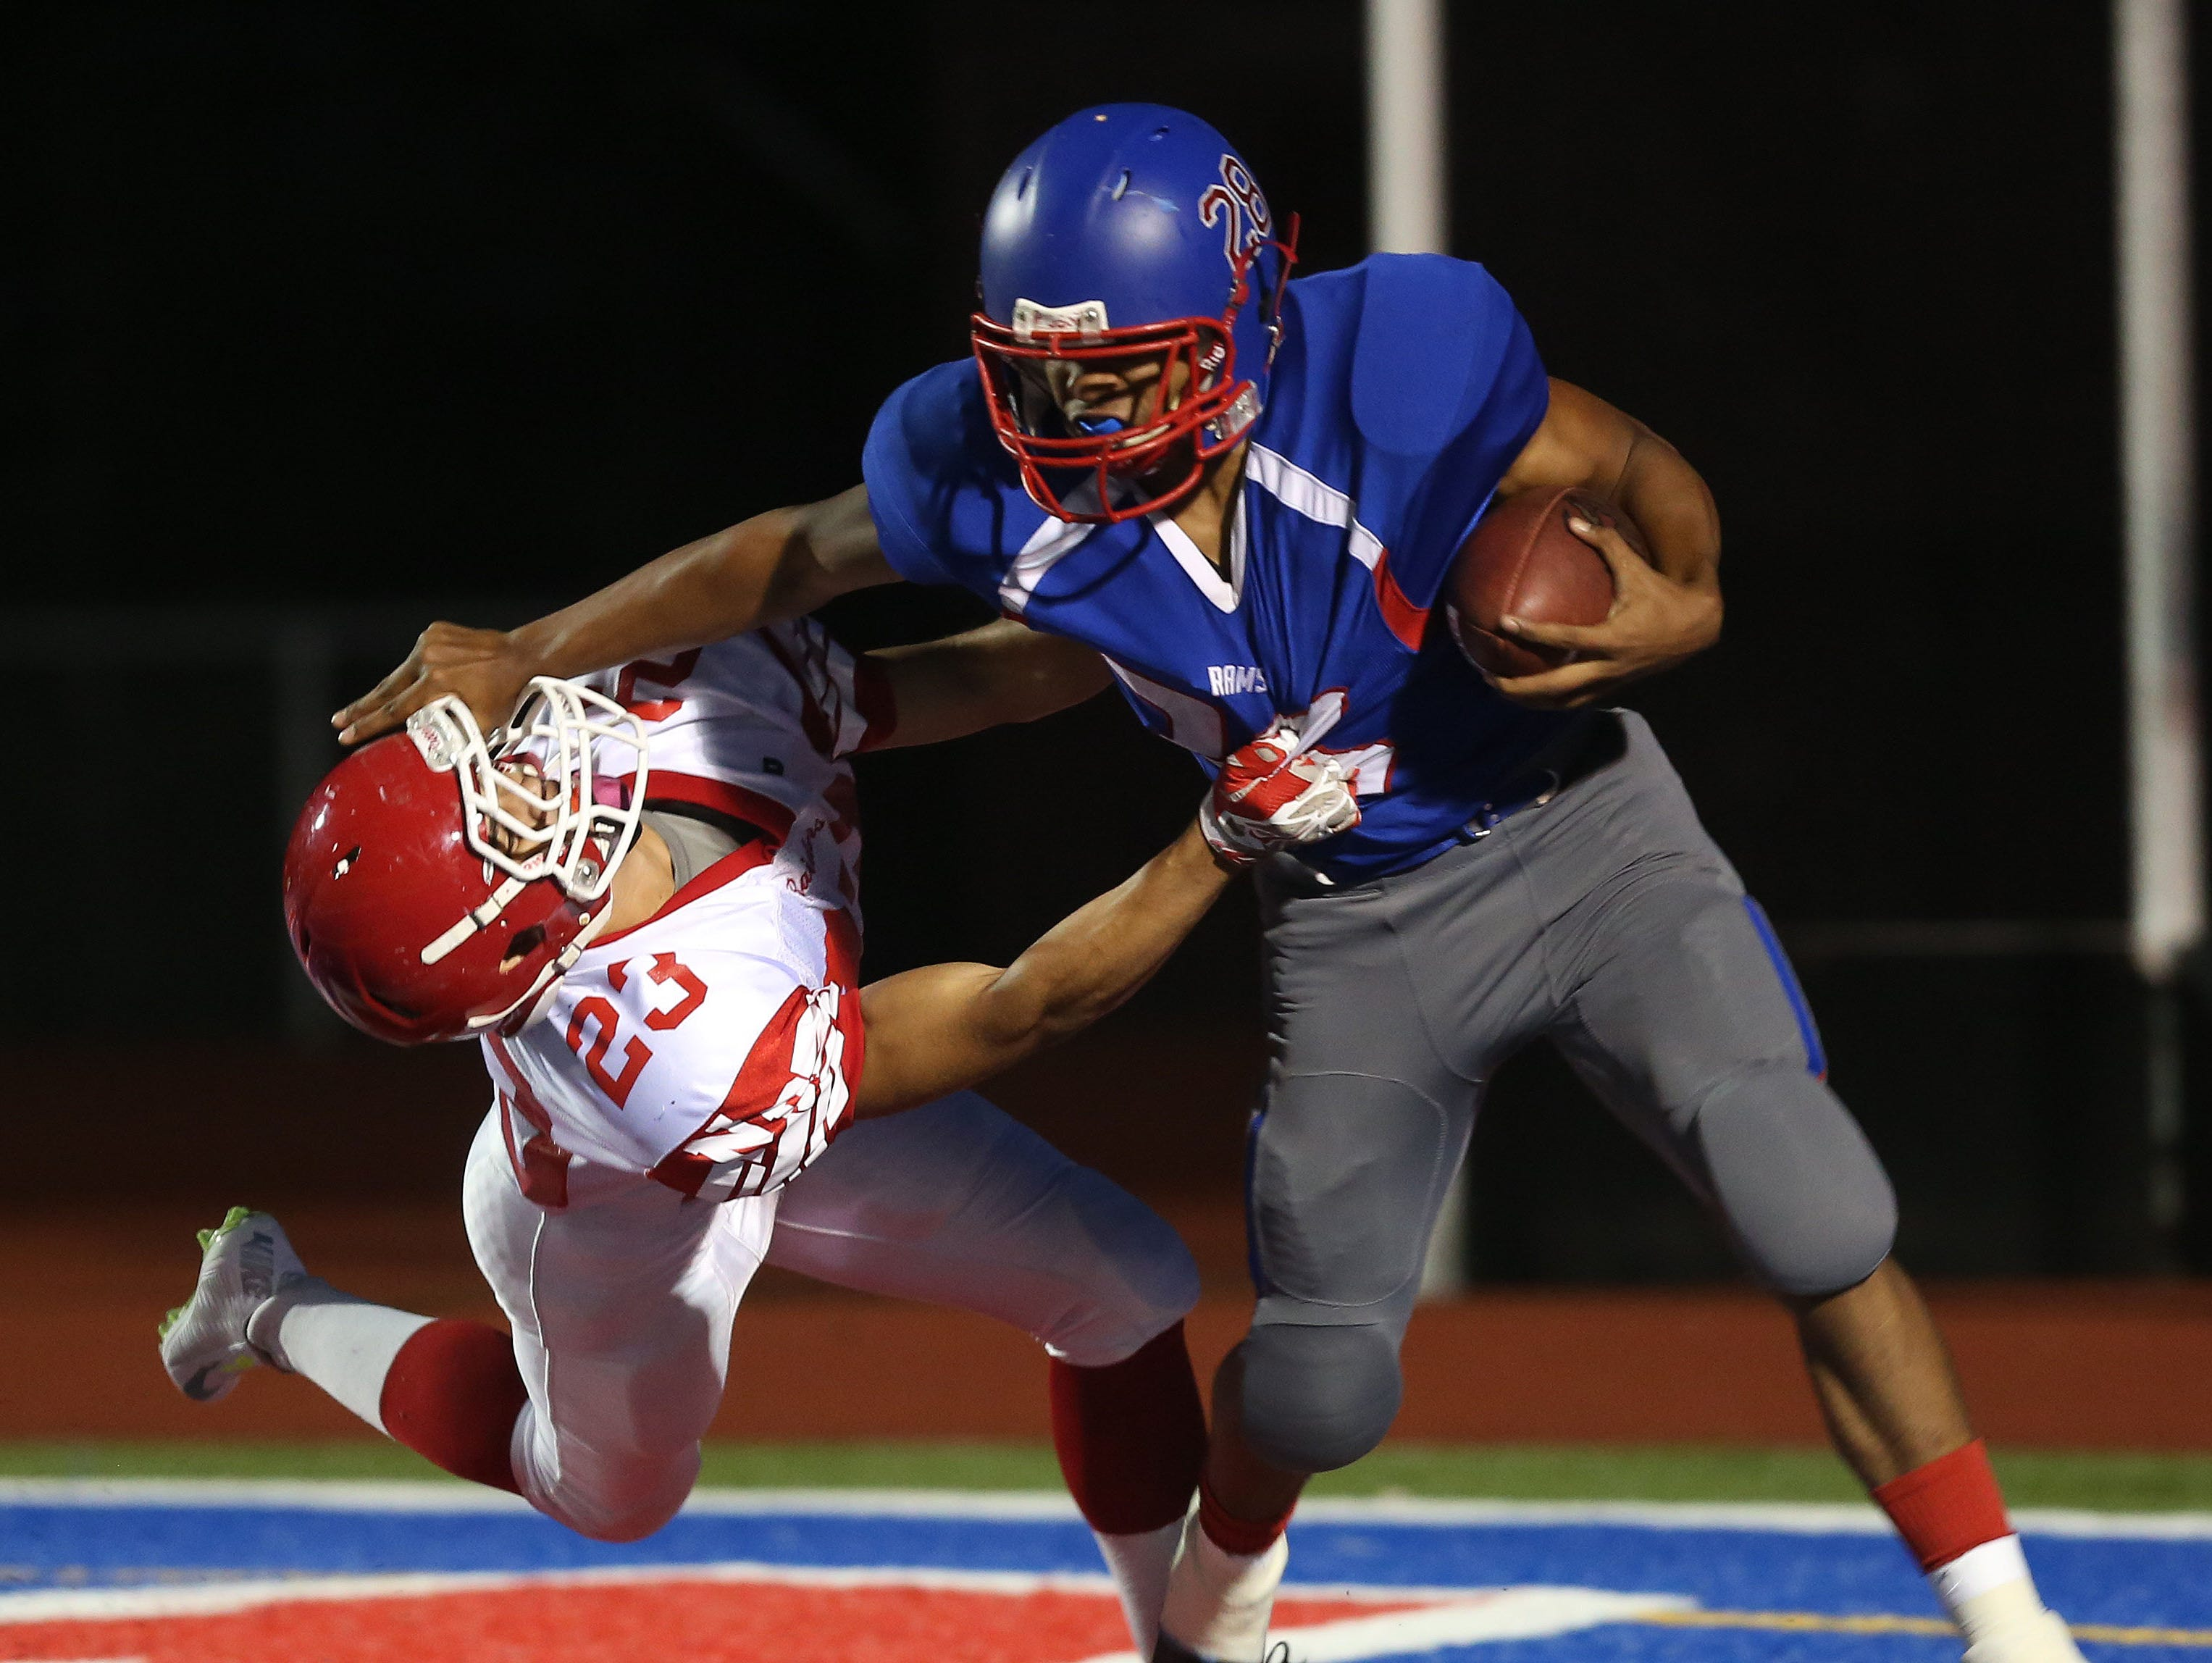 Carmel's Kasey Correa (28) breaks away from North Rockland's Nick Cortez (23) on a big first half run during football action at Carmel High School Sept. 25, 2015